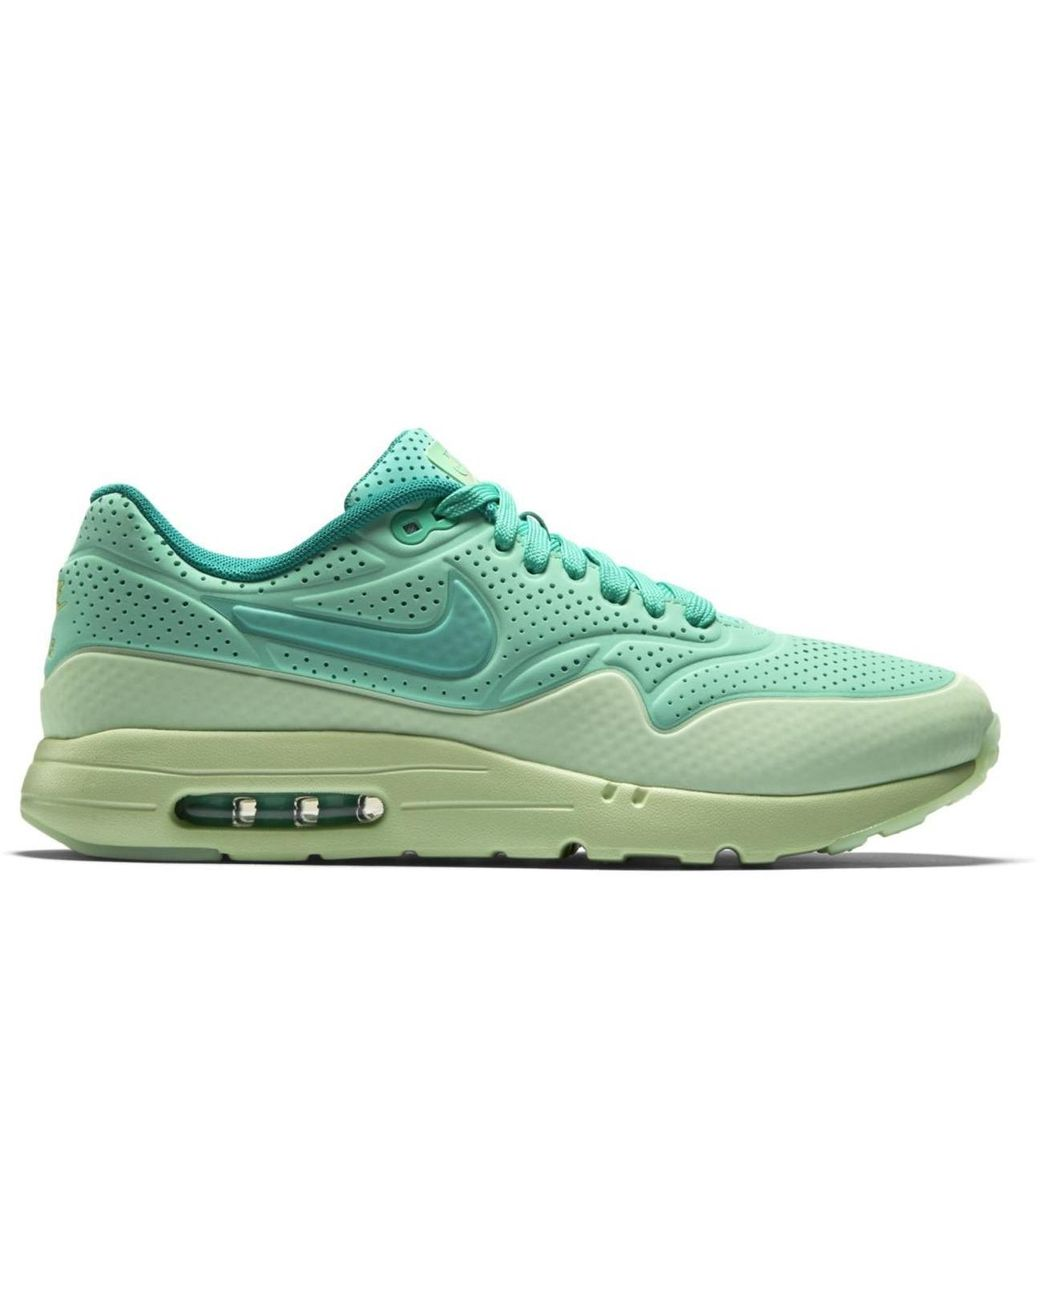 Air Max 90 Ultra Moire Iridescent air max 1 ultra moire green glow